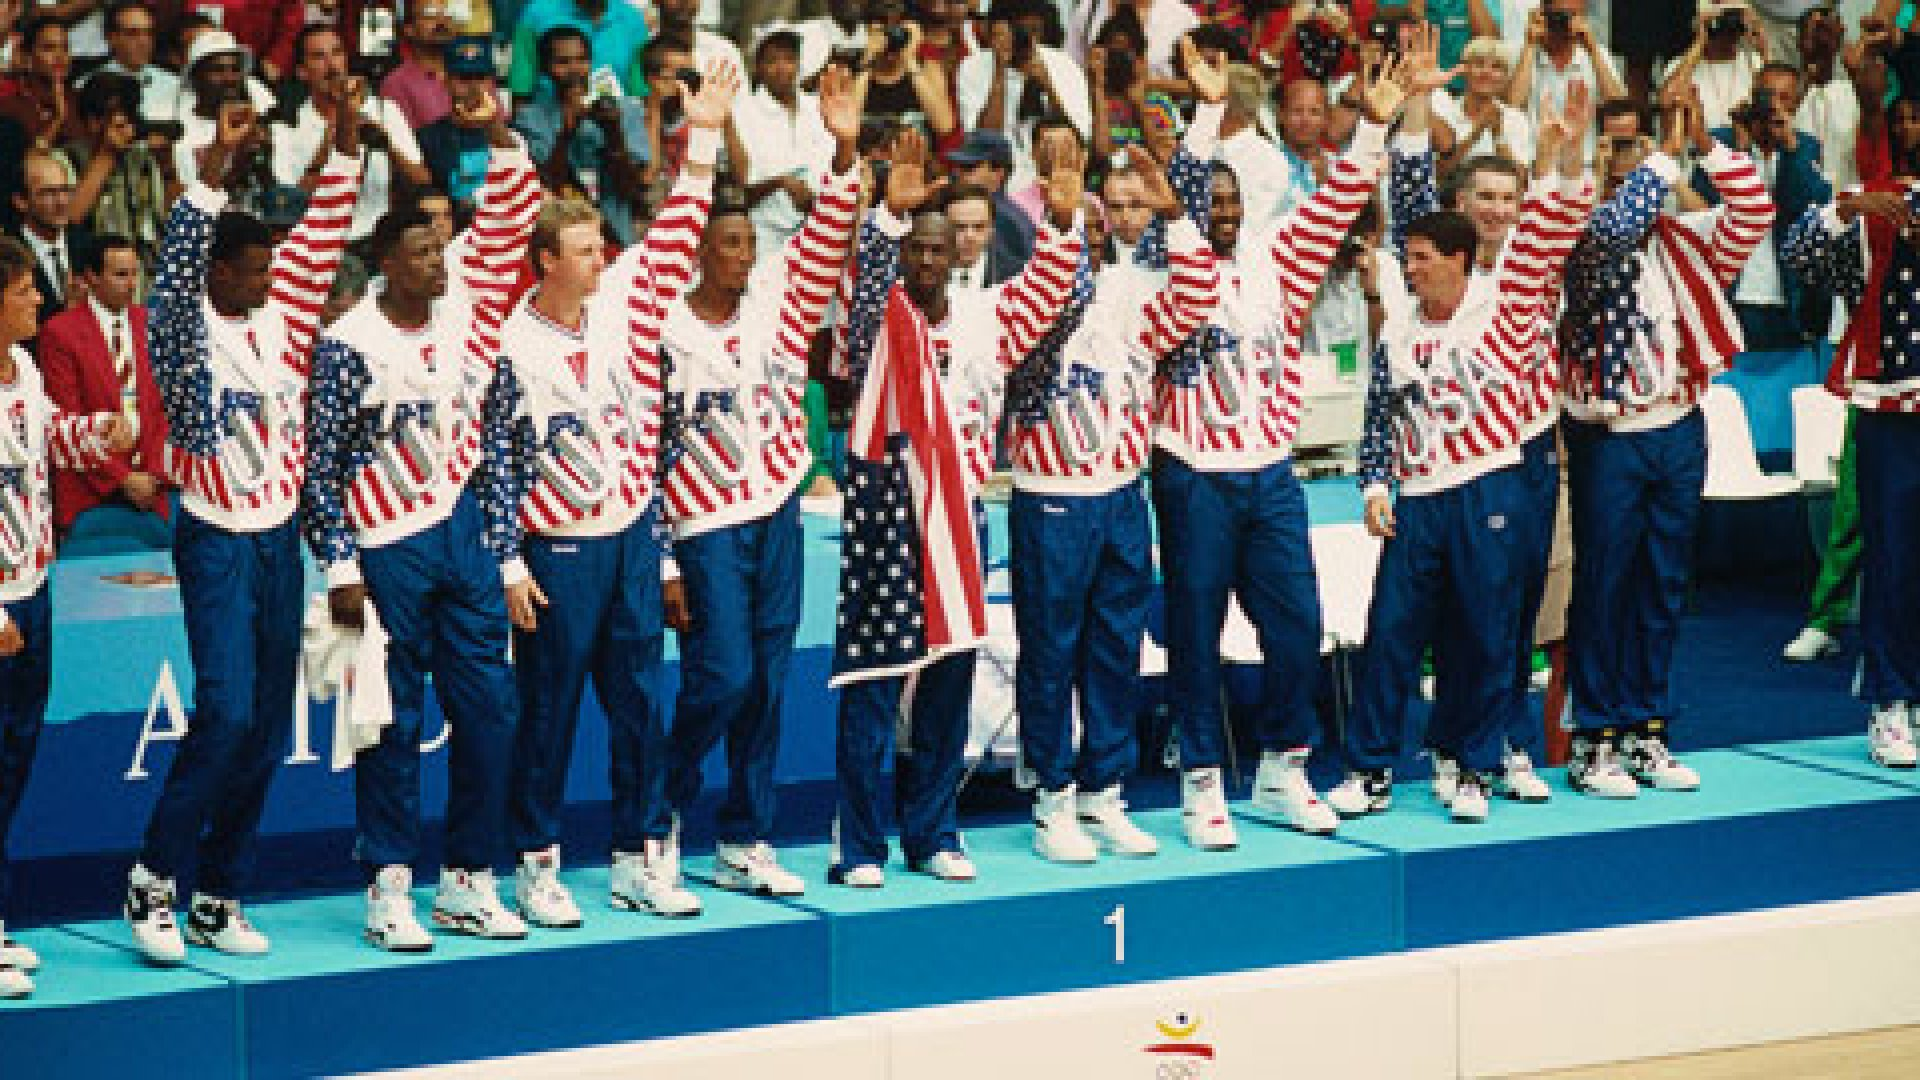 <strong>The Dream Team:</strong> (from left) Christian Laettner, David Robinson, Patrick Ewing, Larry Bird, Scottie Pippen, Michael Jordan, Clyde Drexler, Karl Malone, John Stockton, Chris Mullin, Charles Barkley and Magic Johnson.